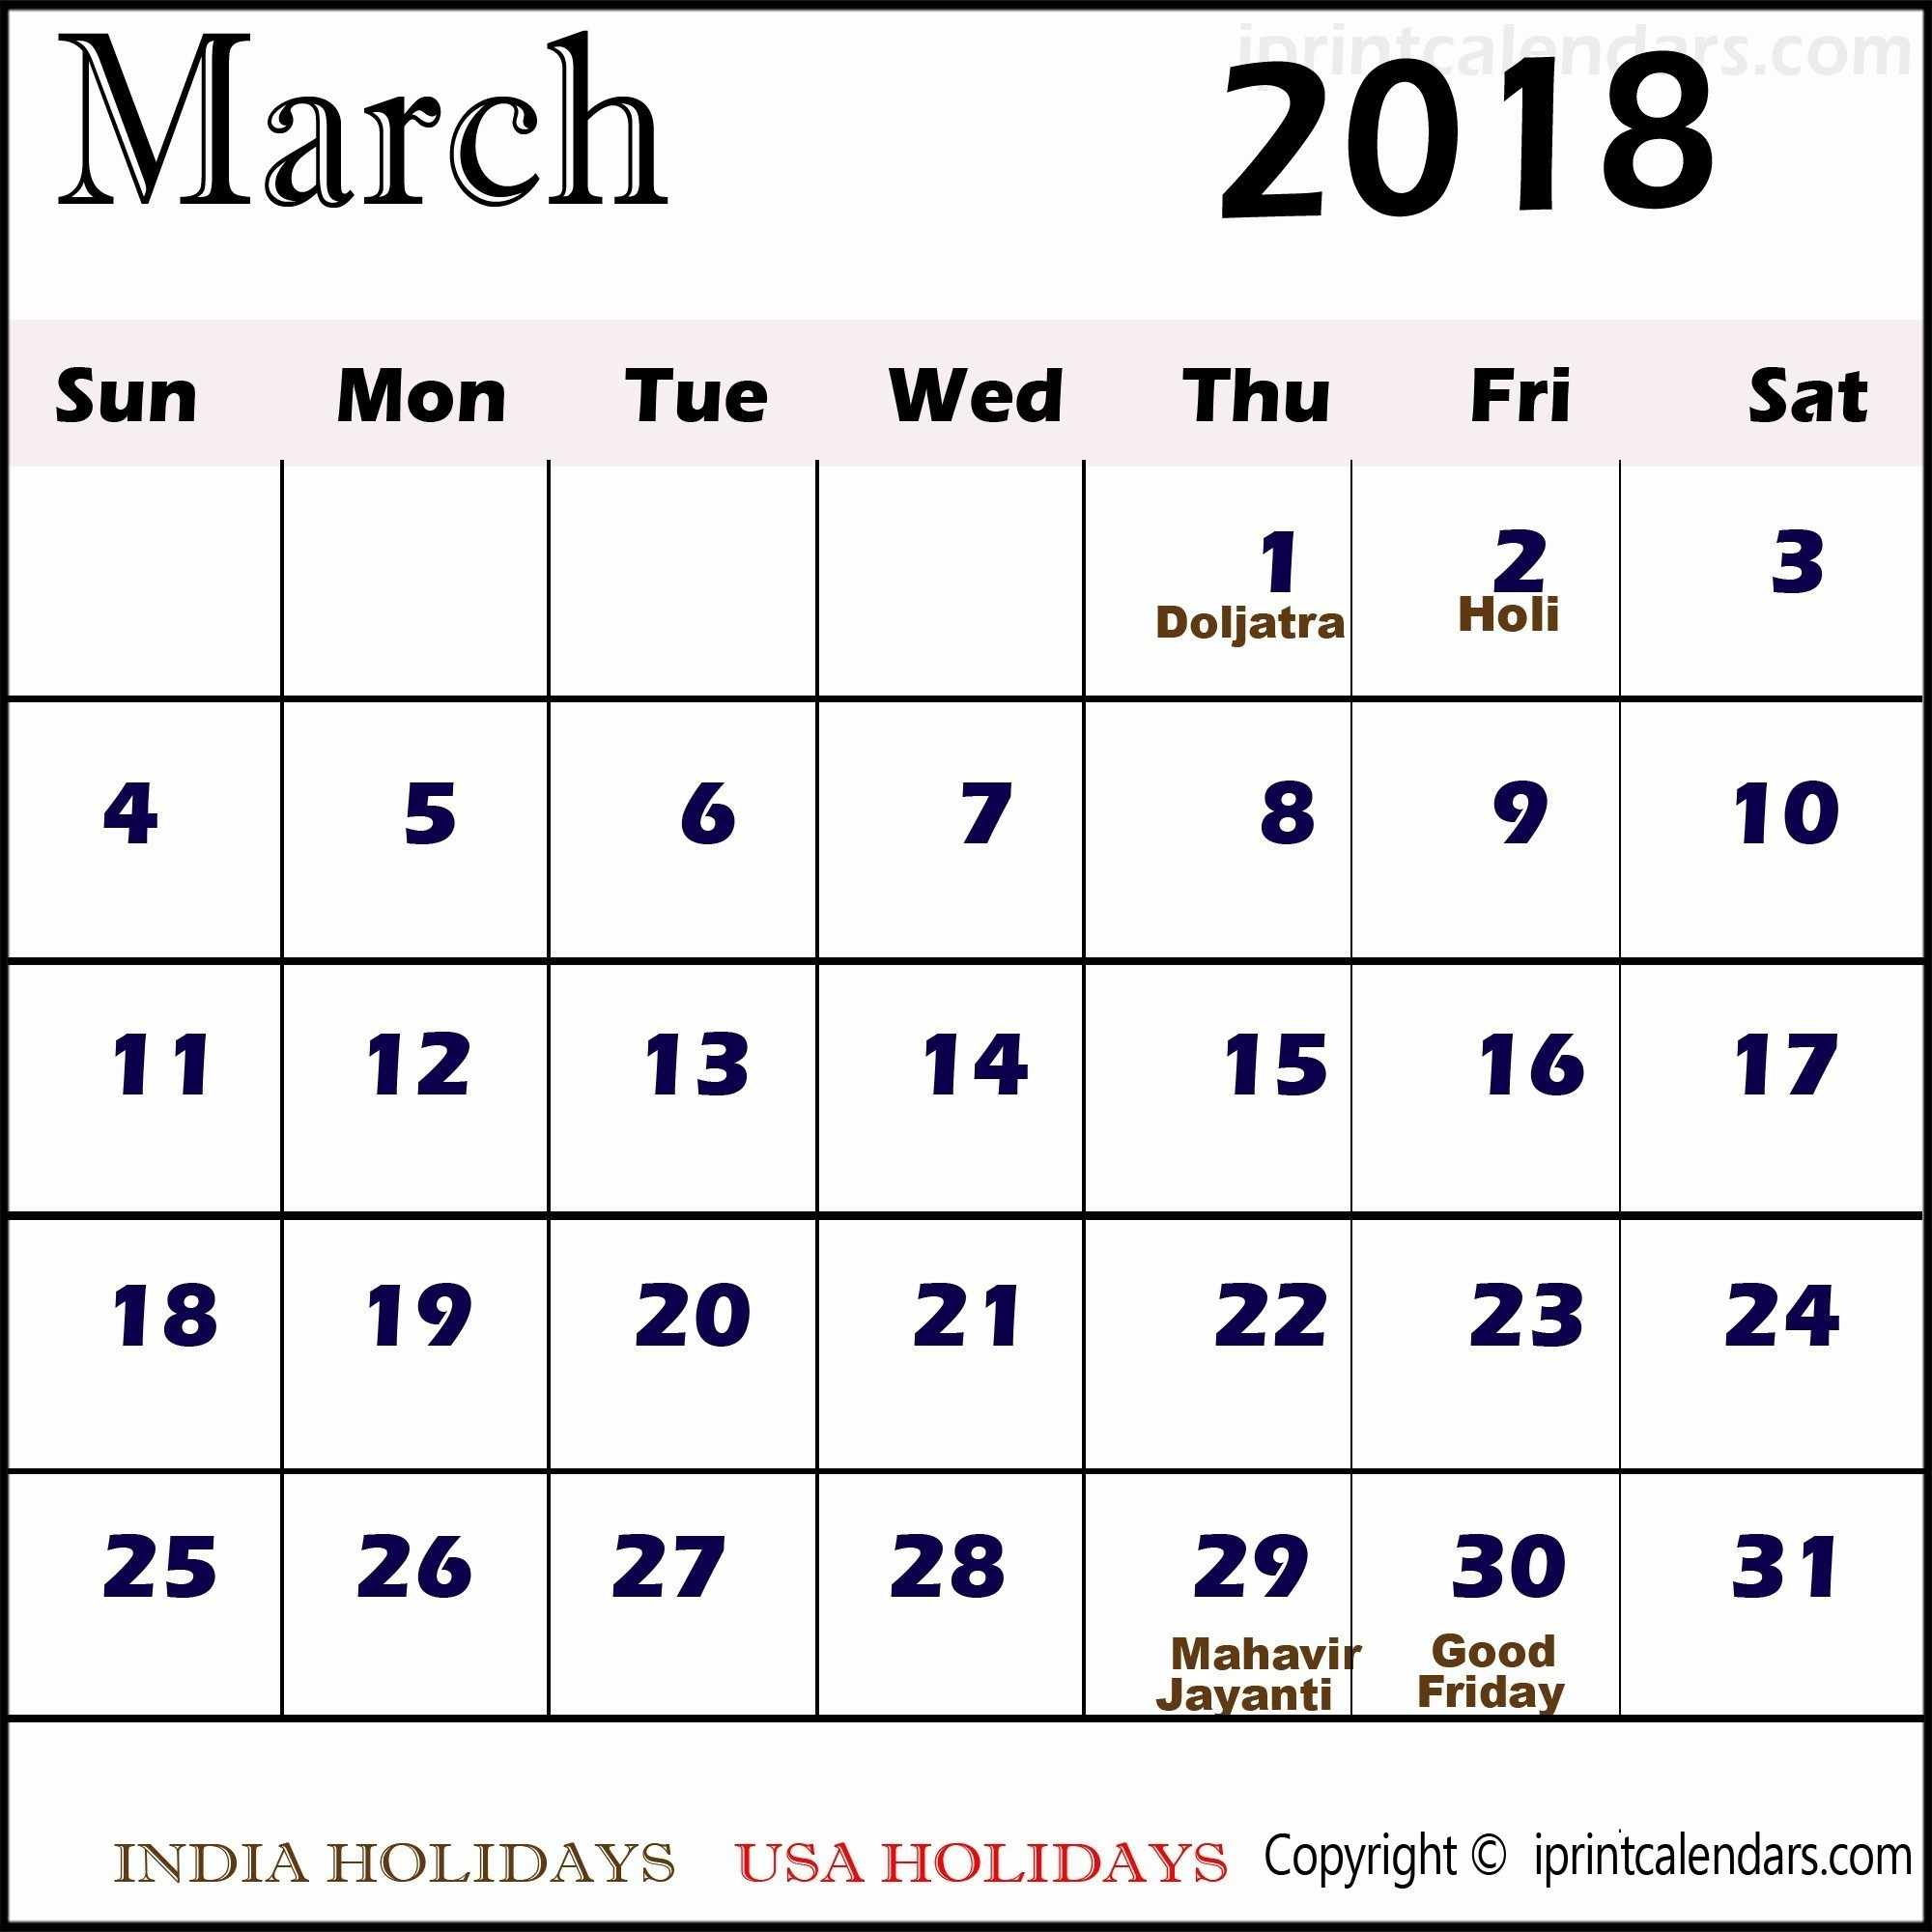 March 2019 Calendar Uk Printable Recientes 2019 Calendar Holidays Of March 2019 Calendar Uk Printable Más Recientemente Liberado June 2019 Calendar Word Lara Expolicenciaslatam